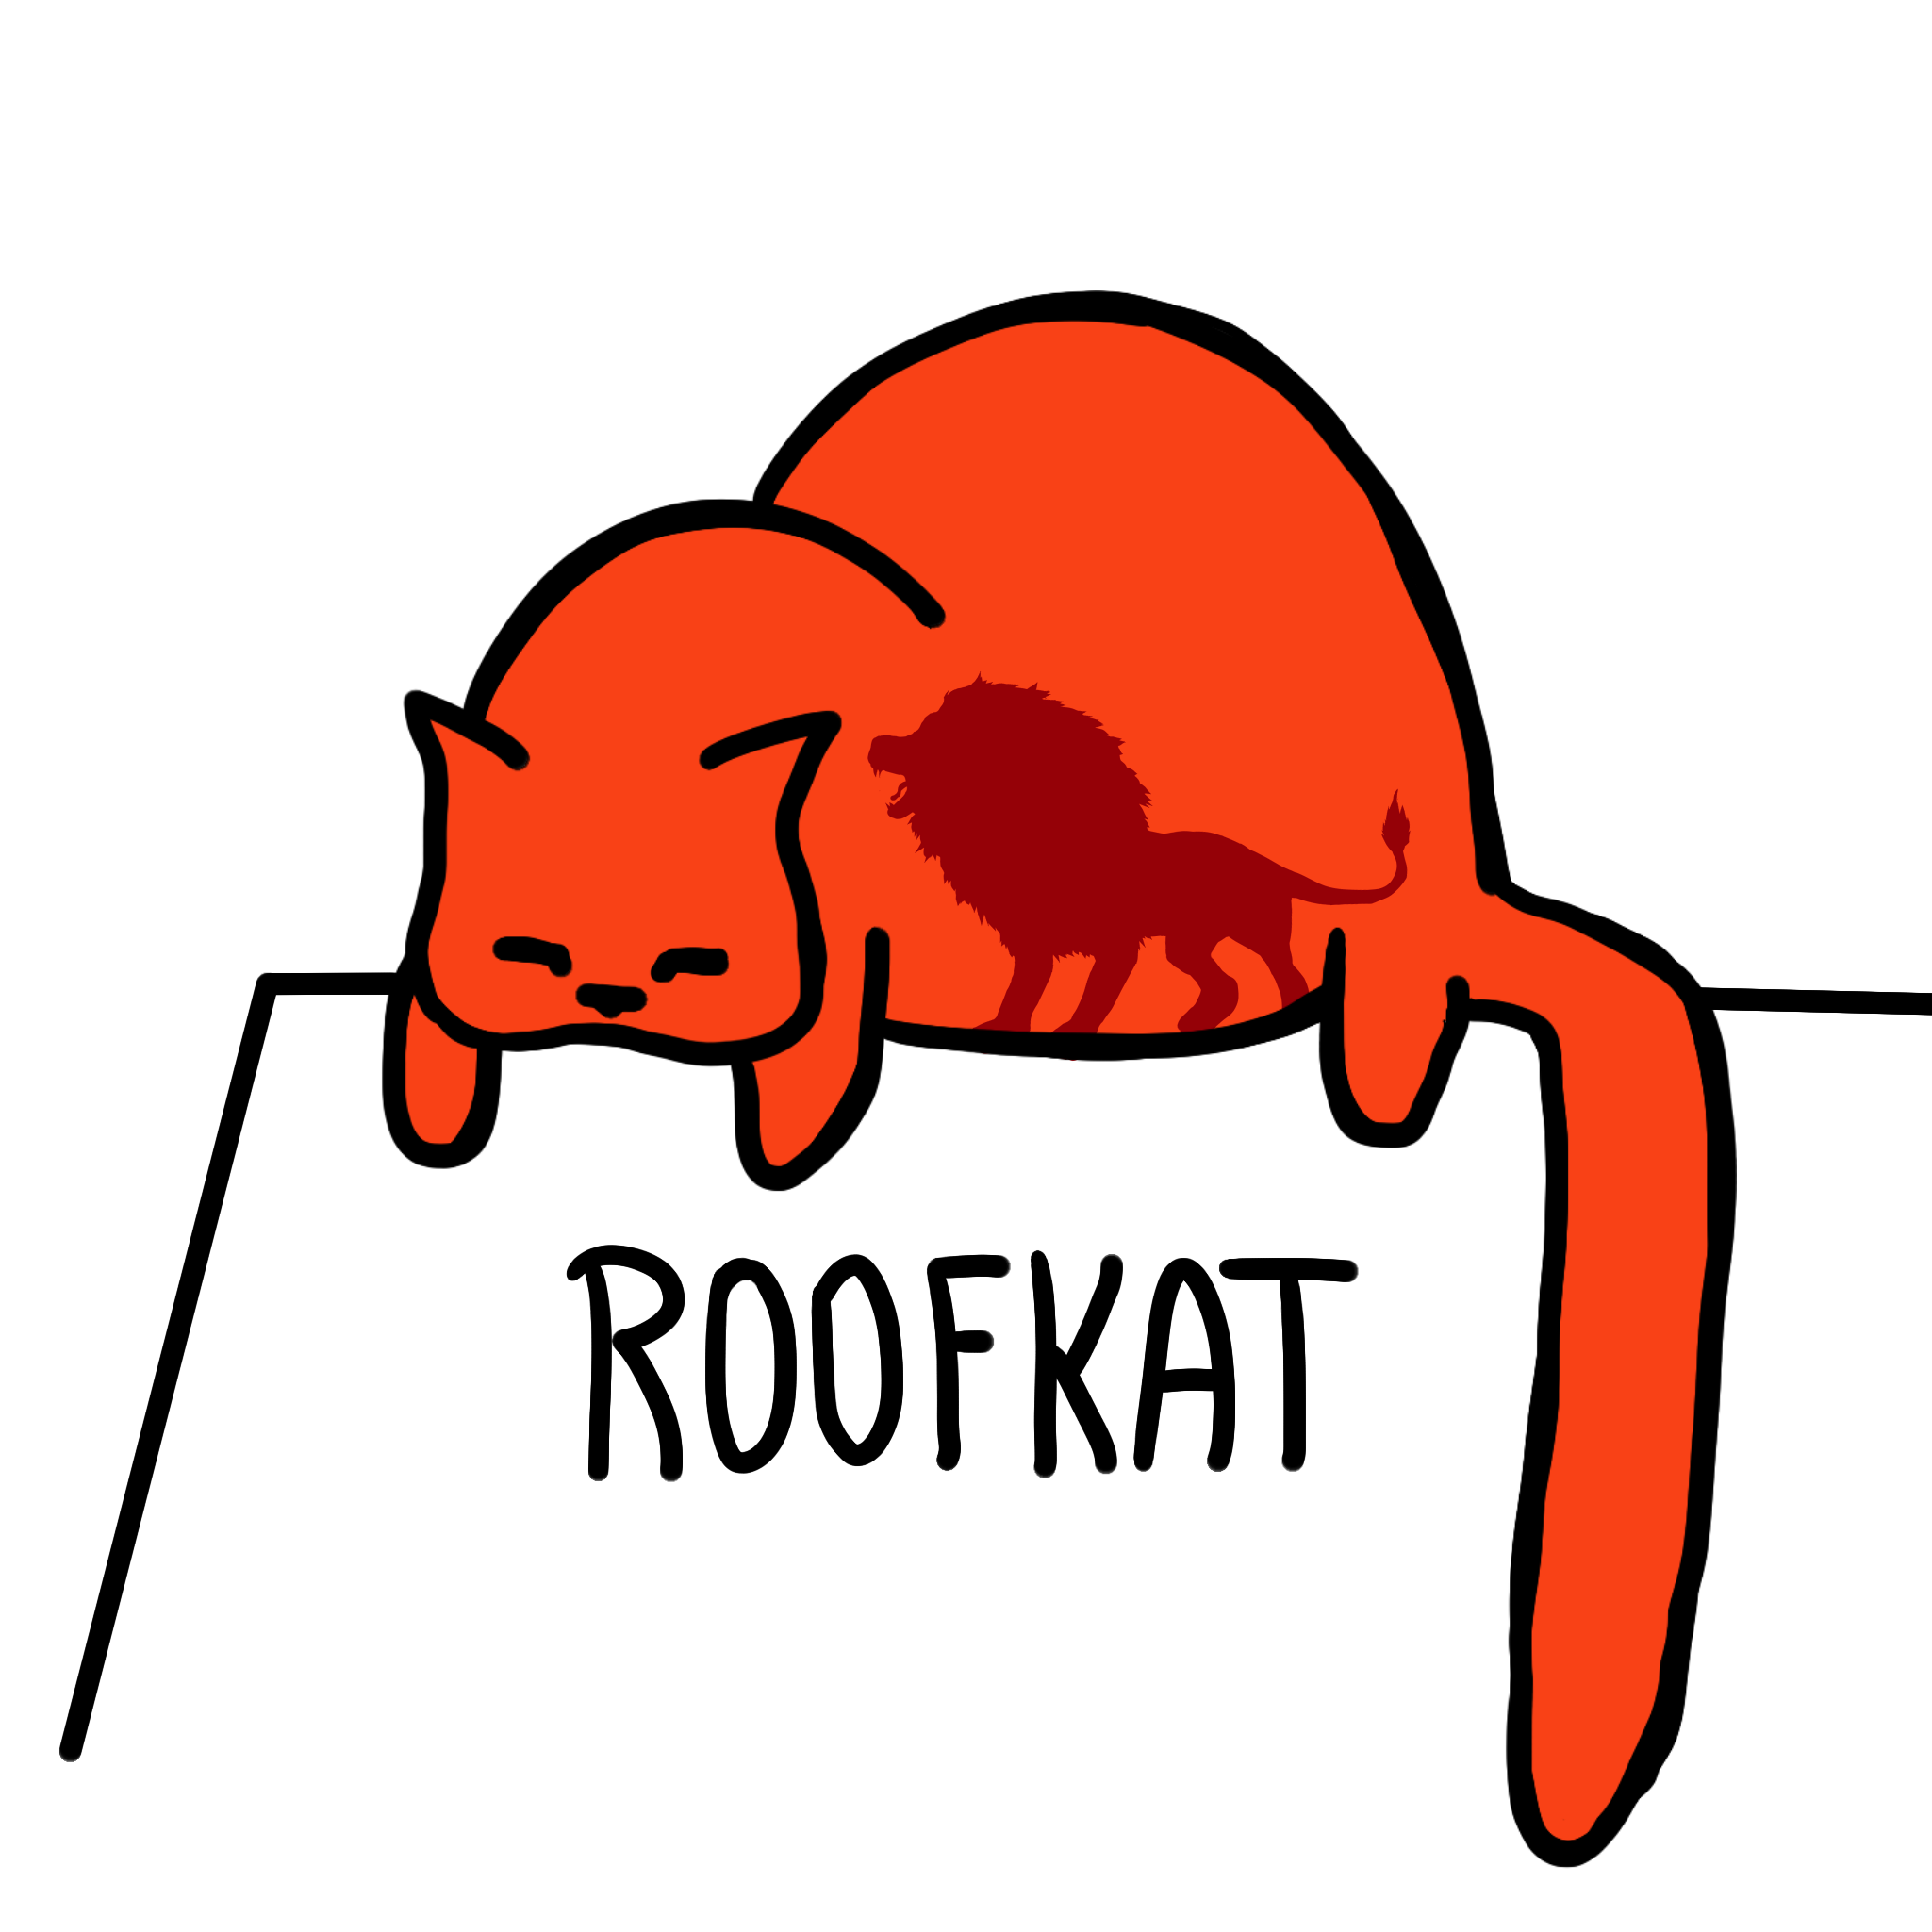 RoofkatPosterLion.png